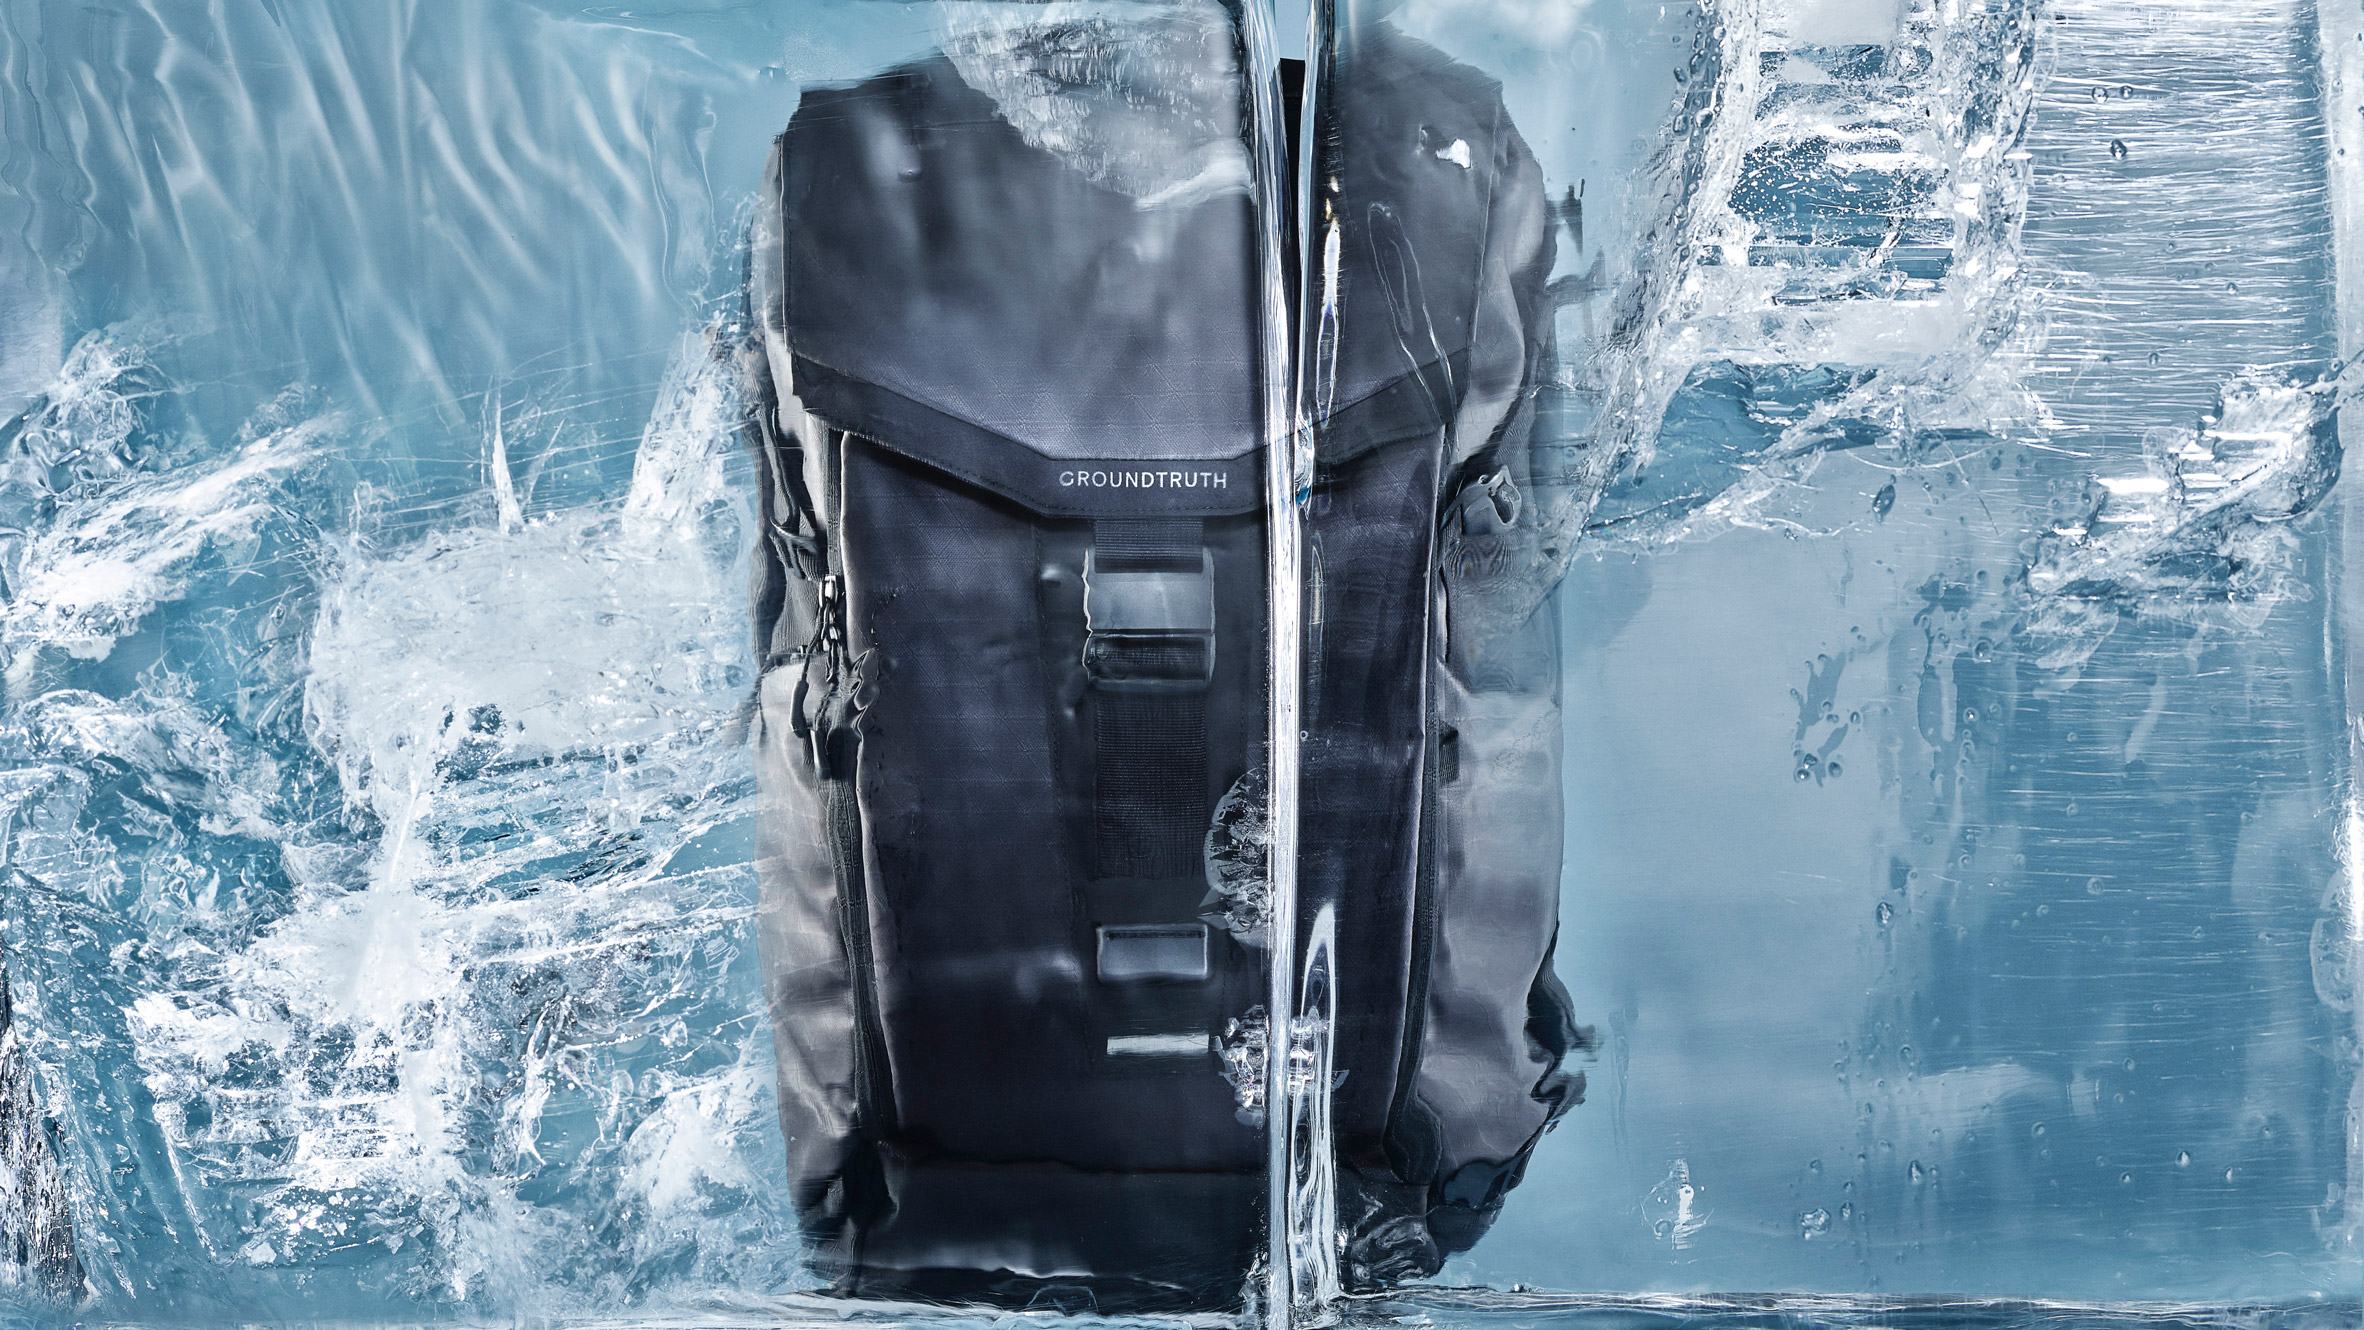 RIKR is a recycled plastic backpack by Groundtruth that can withstand Arctic conditions